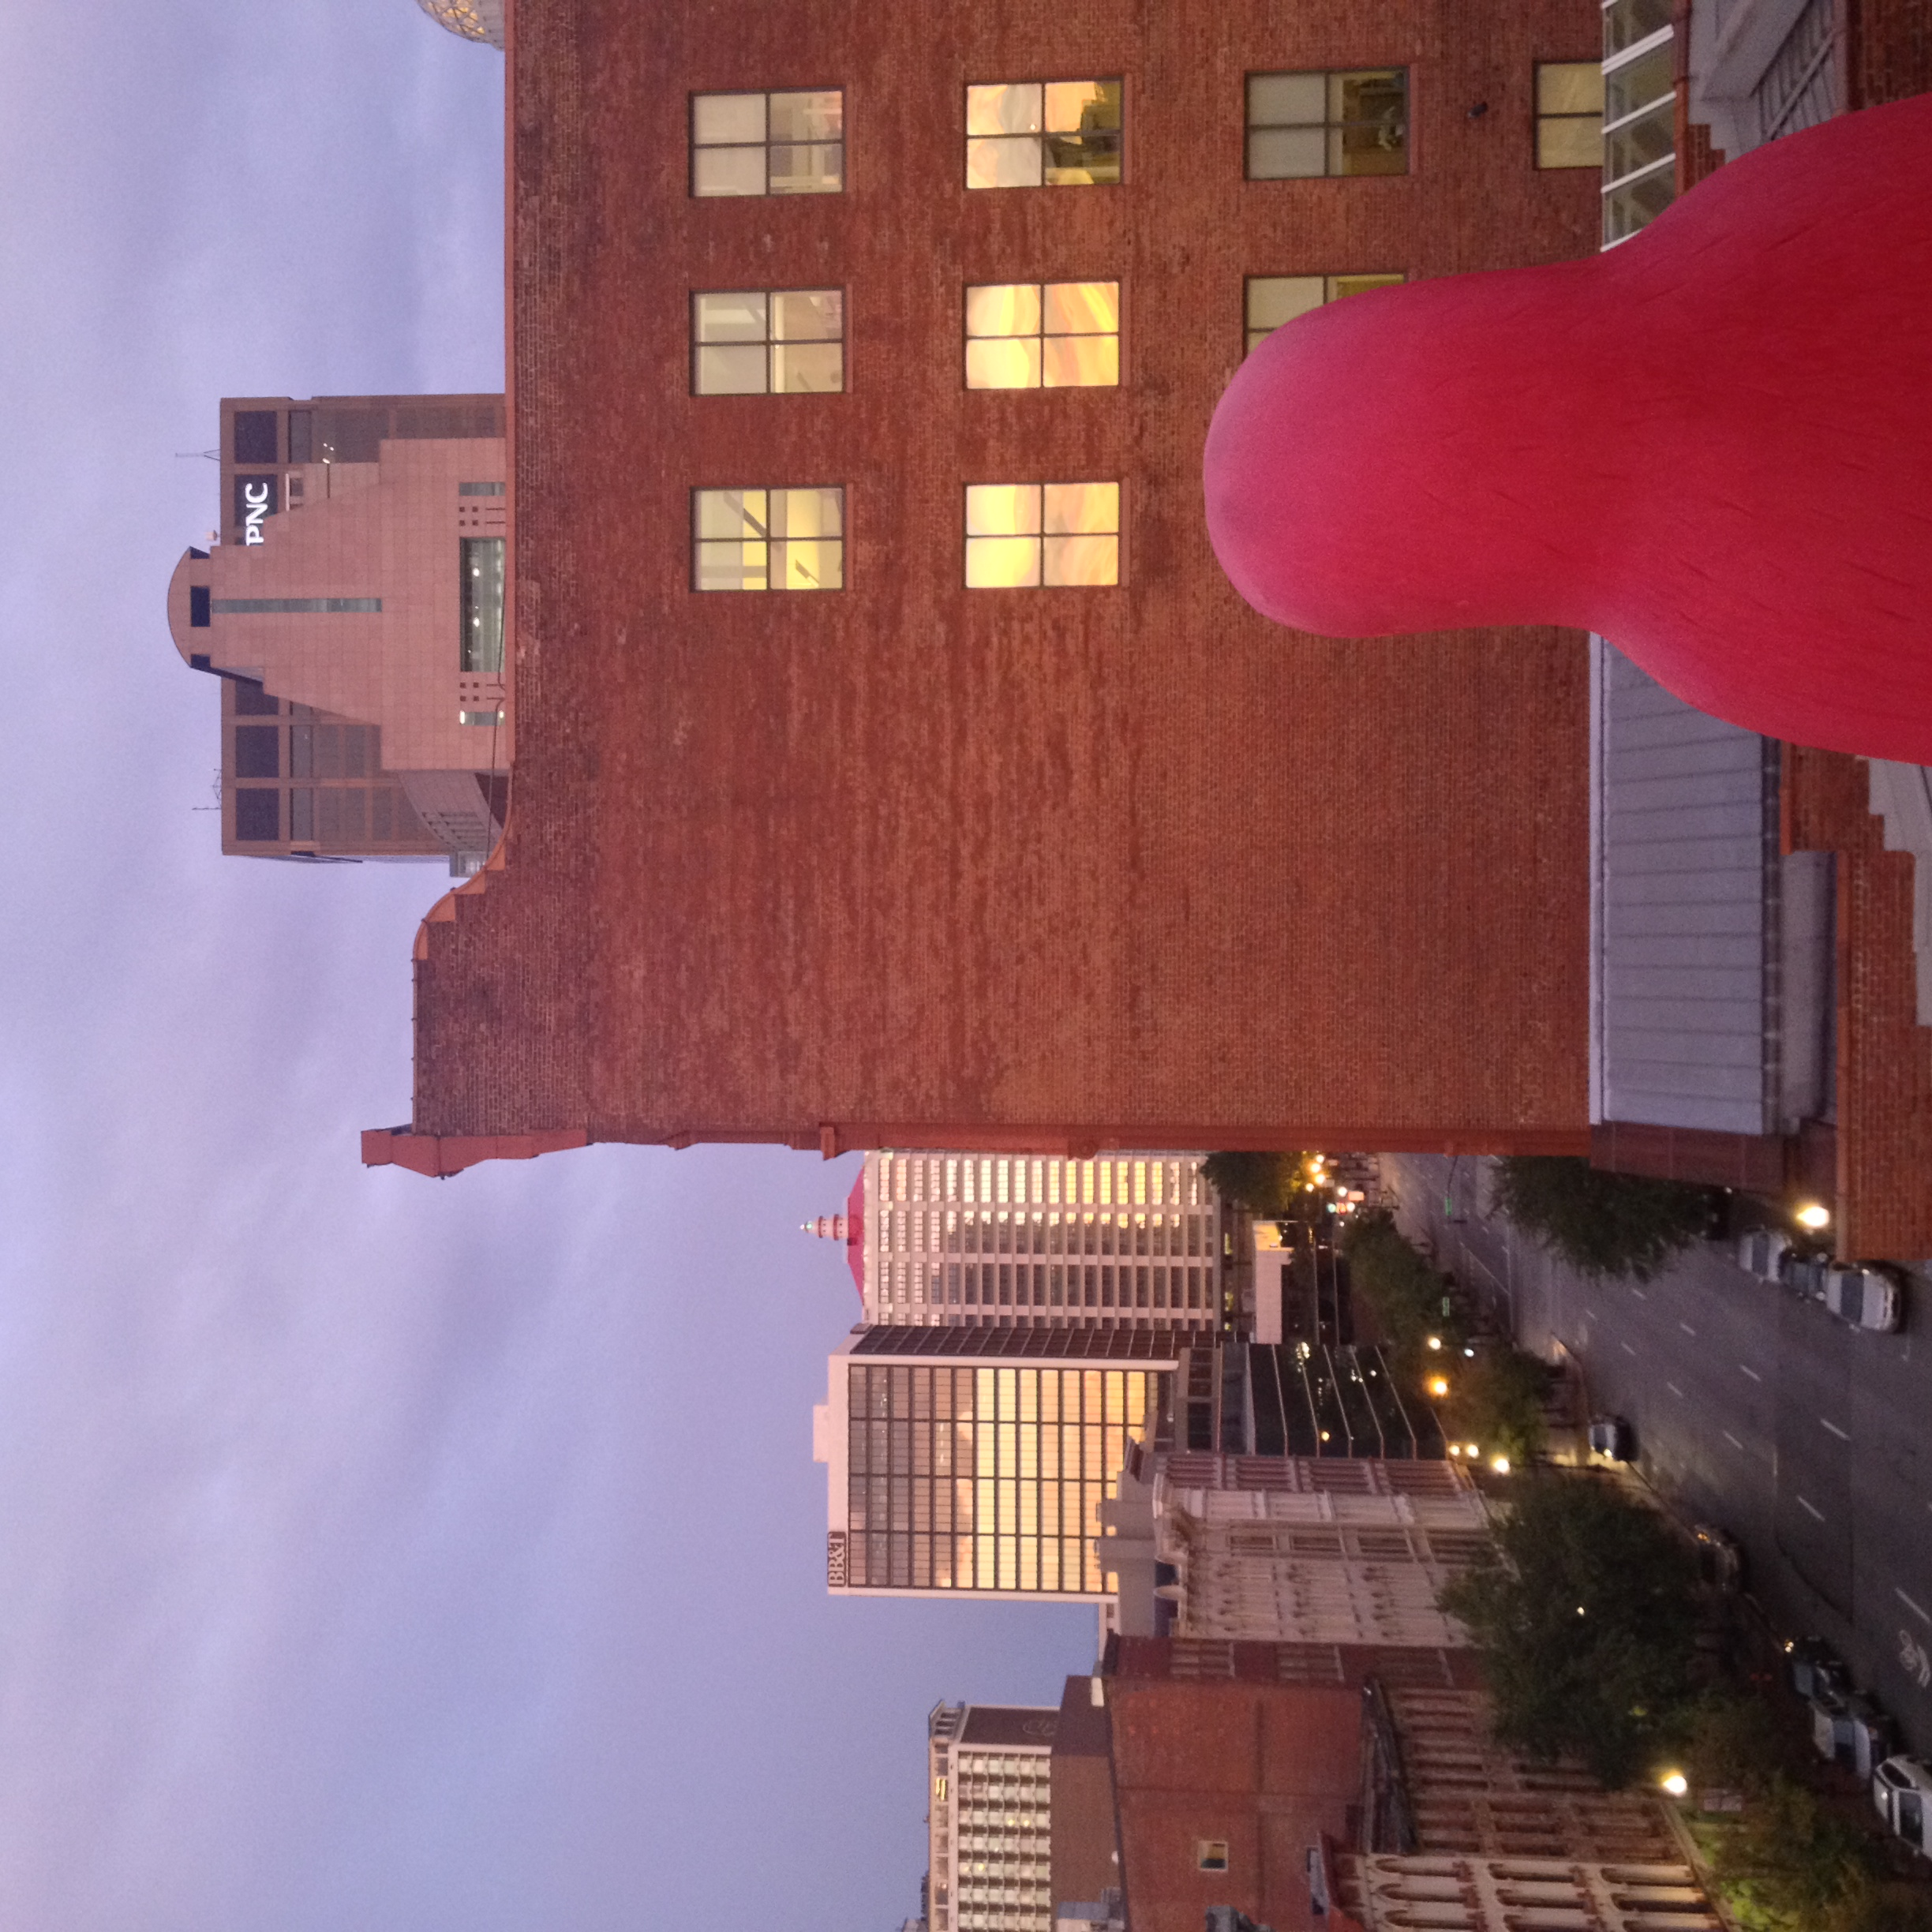 Red penguin watches over Louisville from the fancy rooftop apartment